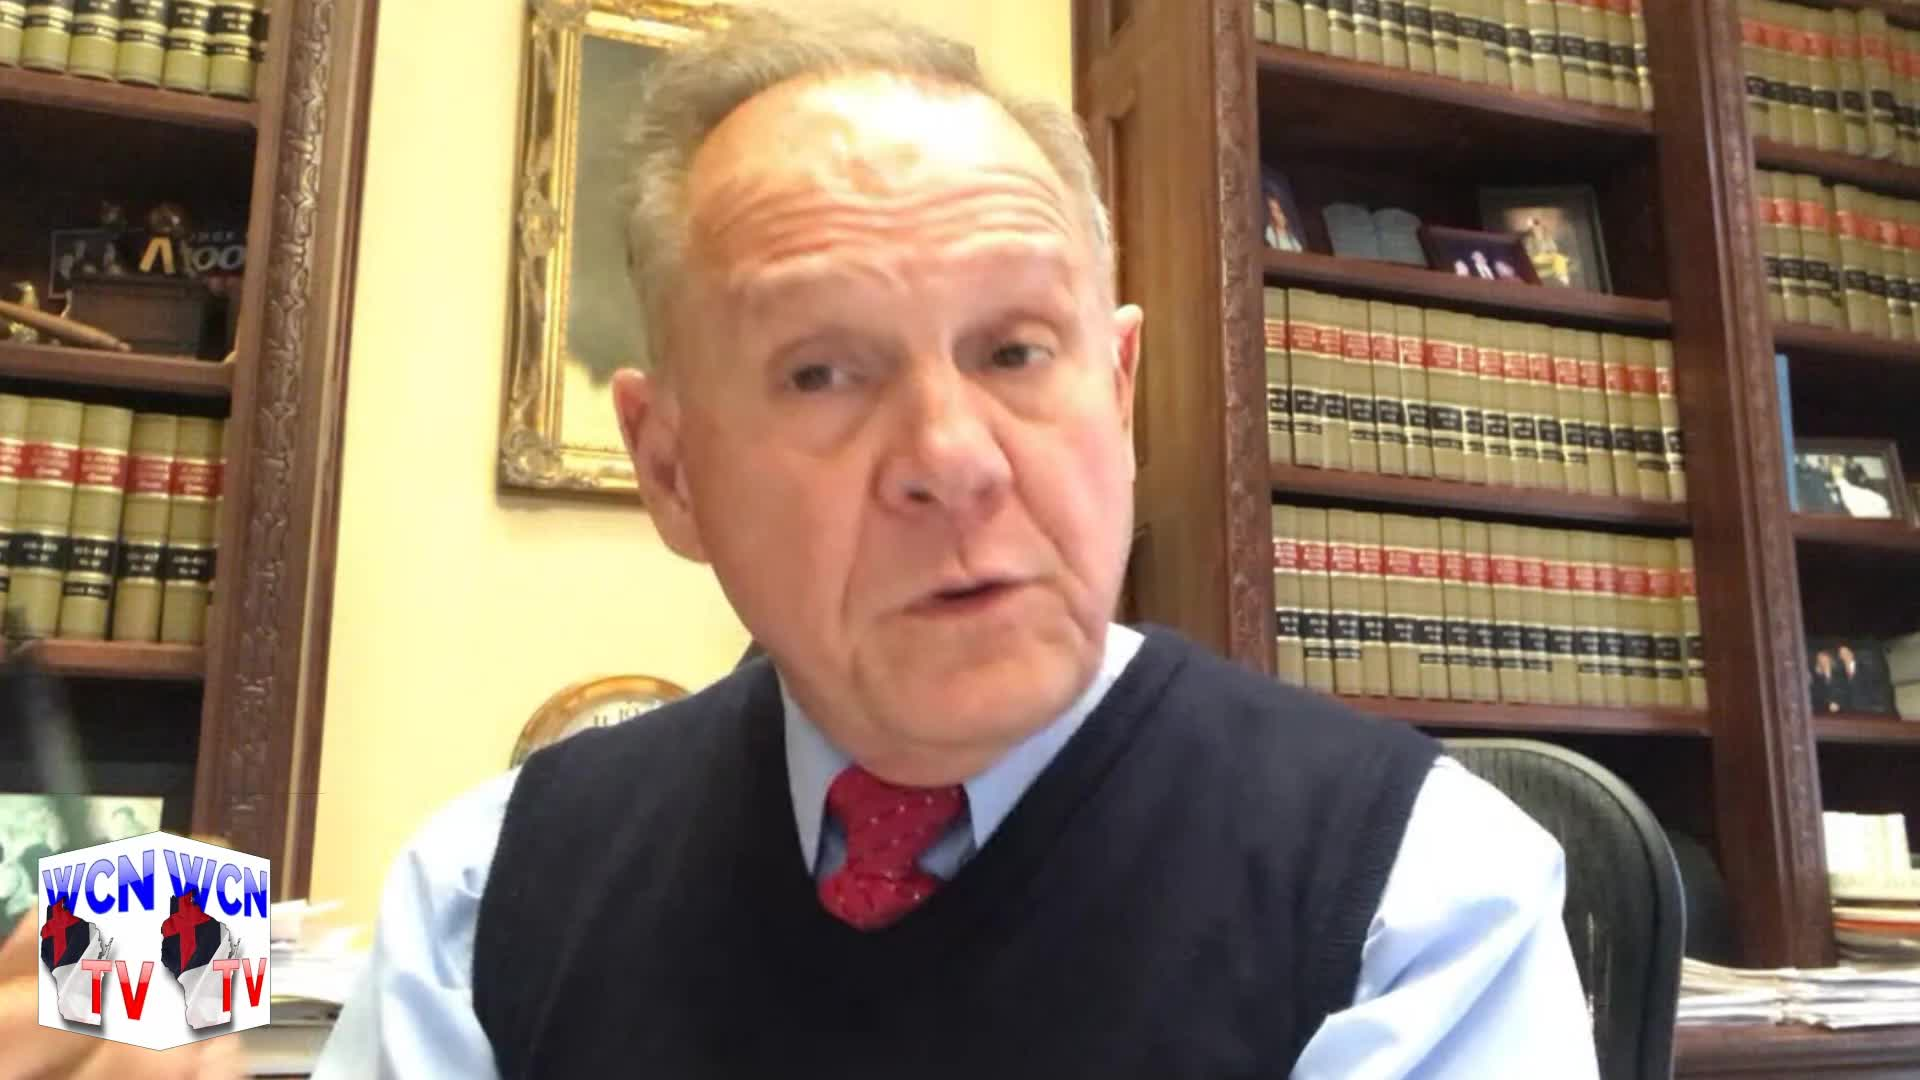 WCNTV with Guest Judge Roy Moore | 12-16-2020